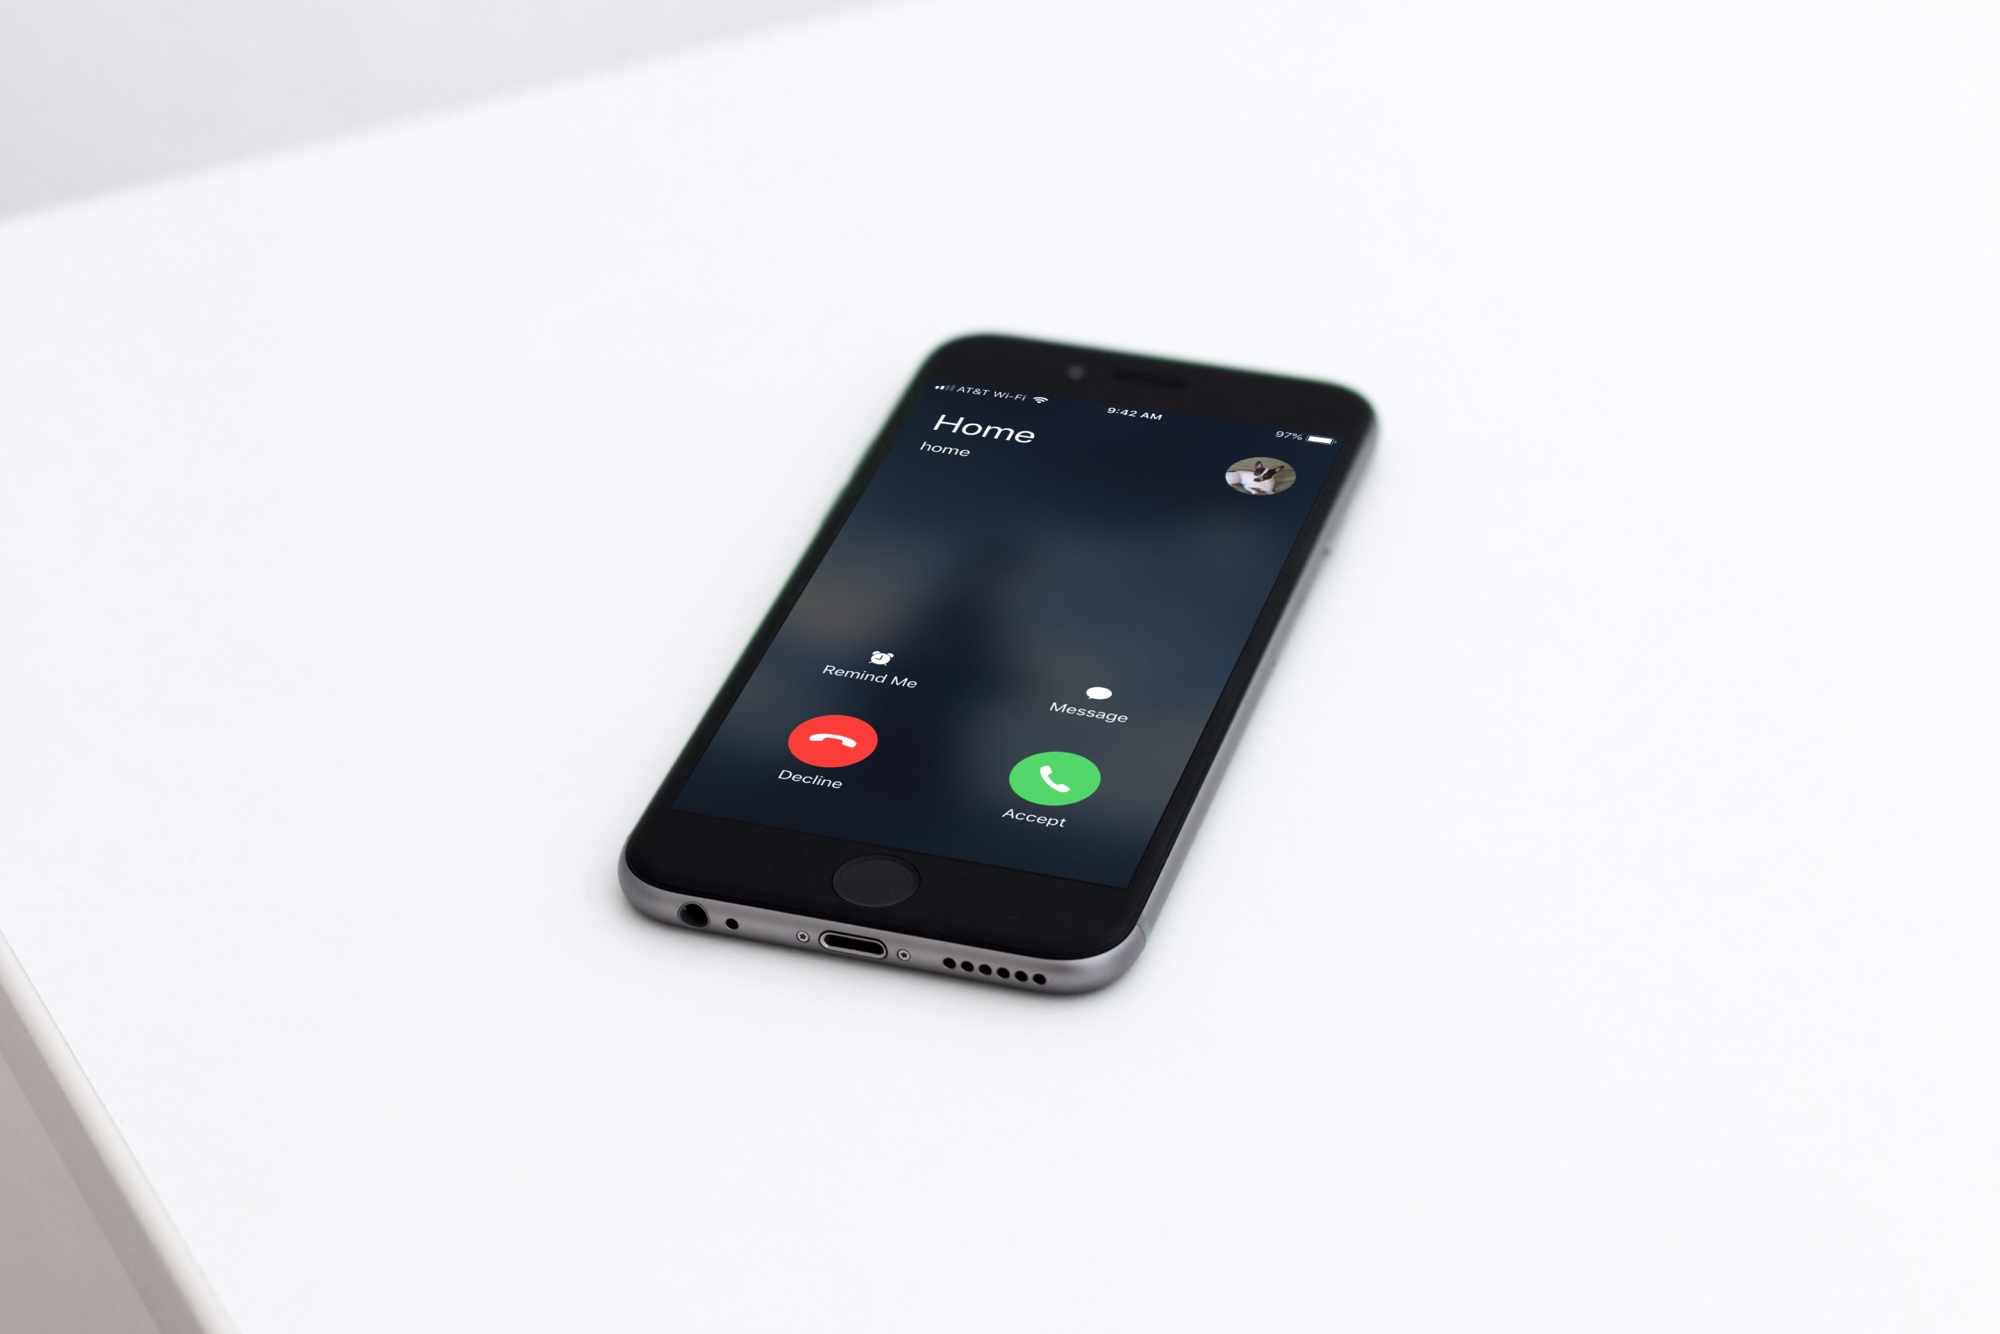 iPhone Ringing on Table